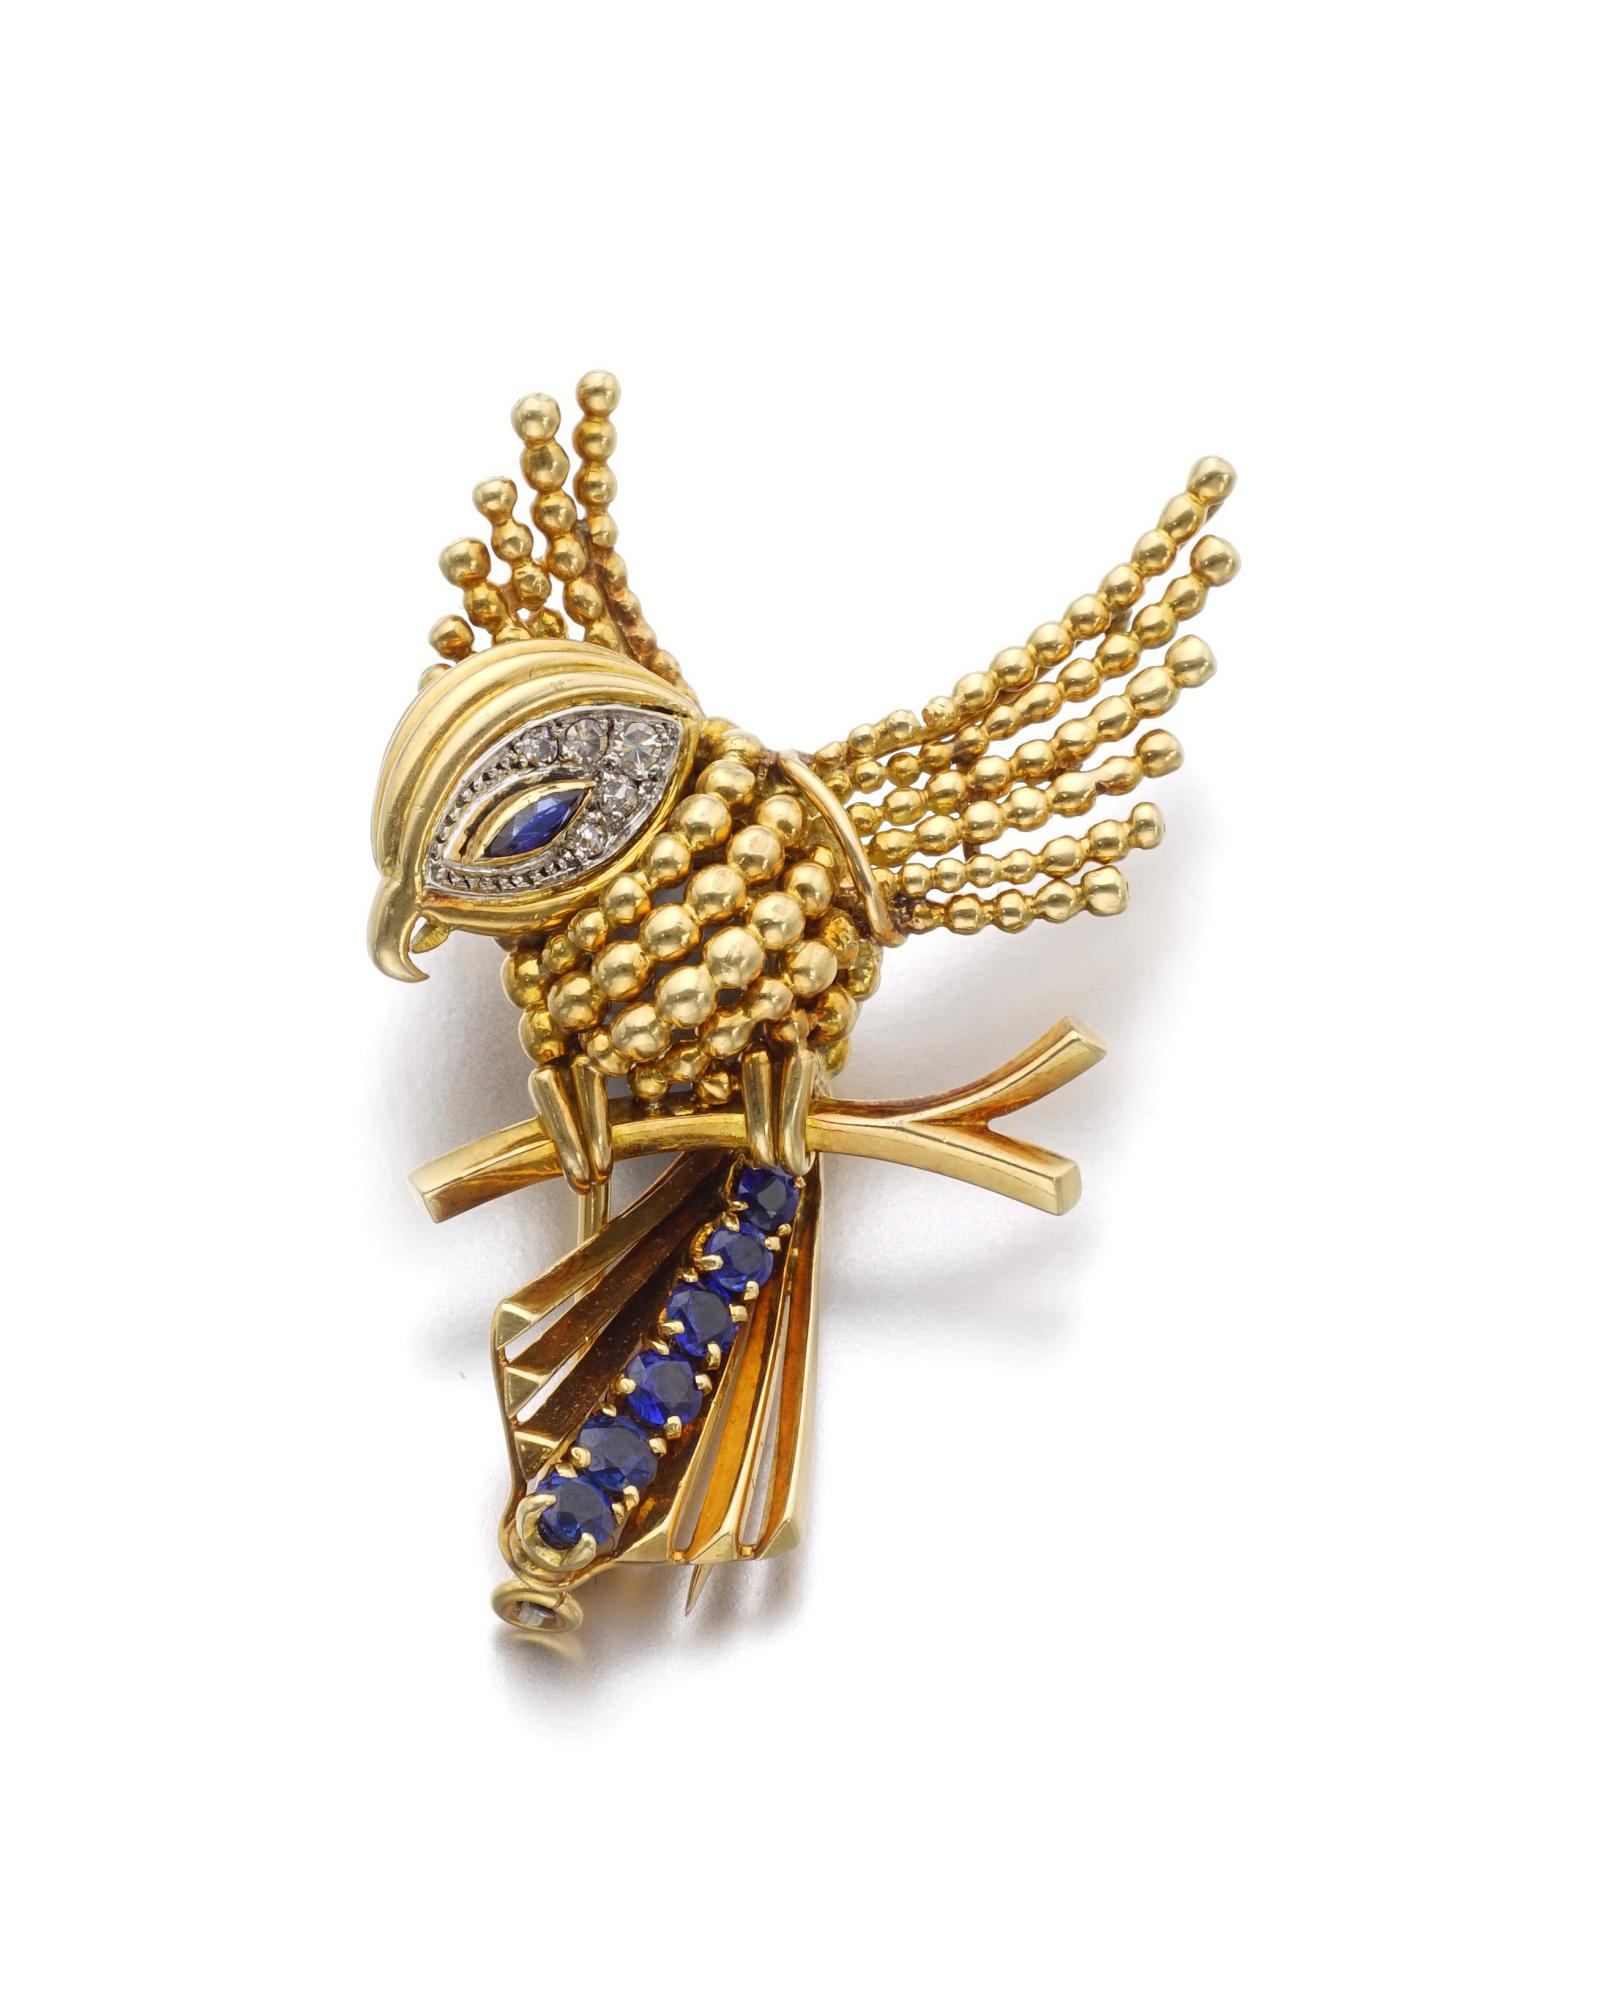 GOLD, SAPPHIRE AND DIAMOND BROOCH | BOUCHERON